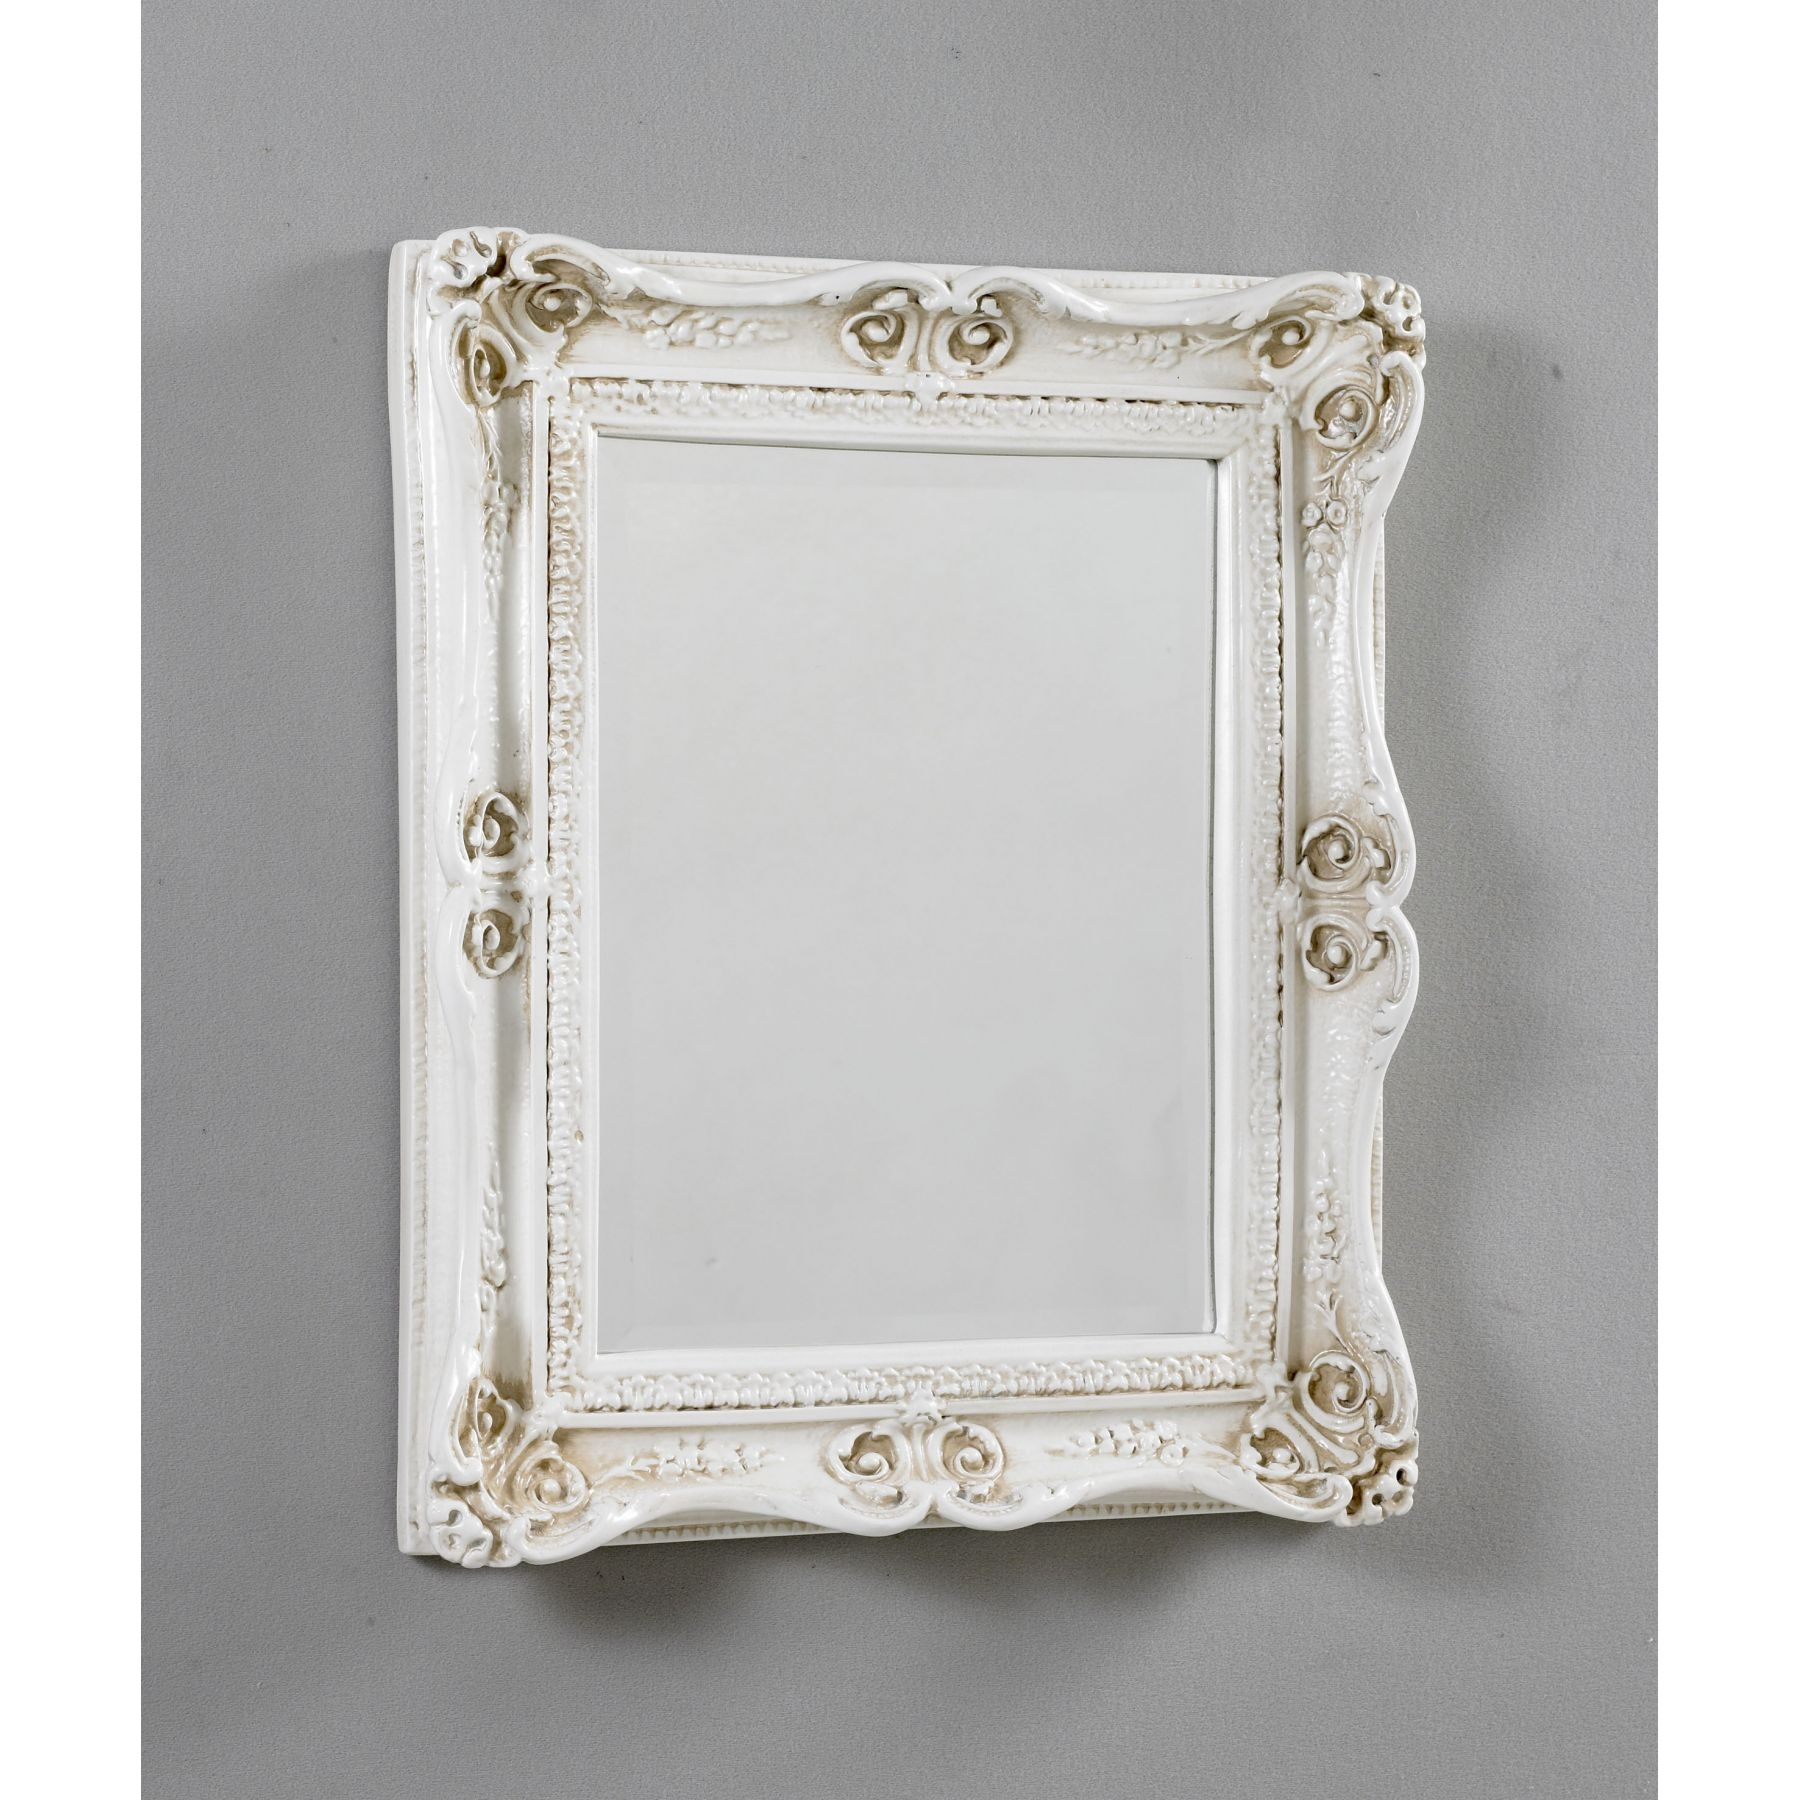 Home Decor Antique Wall Mirrorantique Mirrorwall Mirrordecor With Regard To Antiqued Mirrors For Sale (Image 9 of 15)